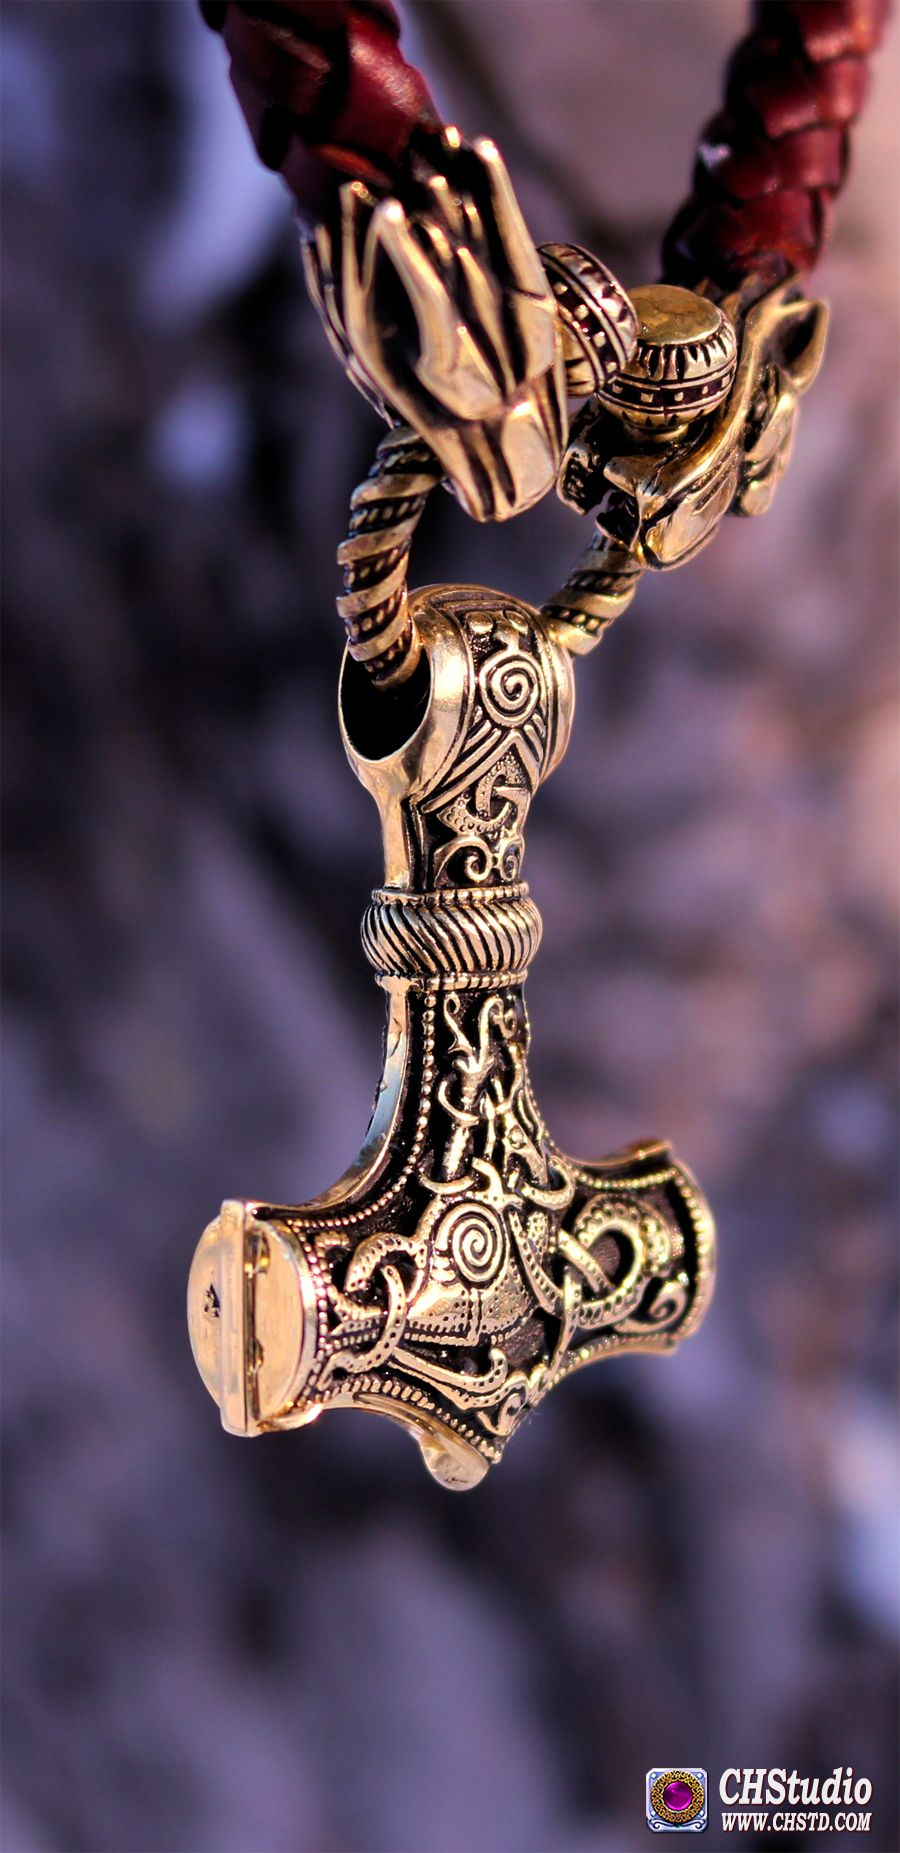 A magnificent jewel, throughout you feel its power! It is an outstanding craftmansship and a fantastic handling of bronze! I love it!!! You can place orde in our store www.chstd.com #mjolnir #handmadejewelry